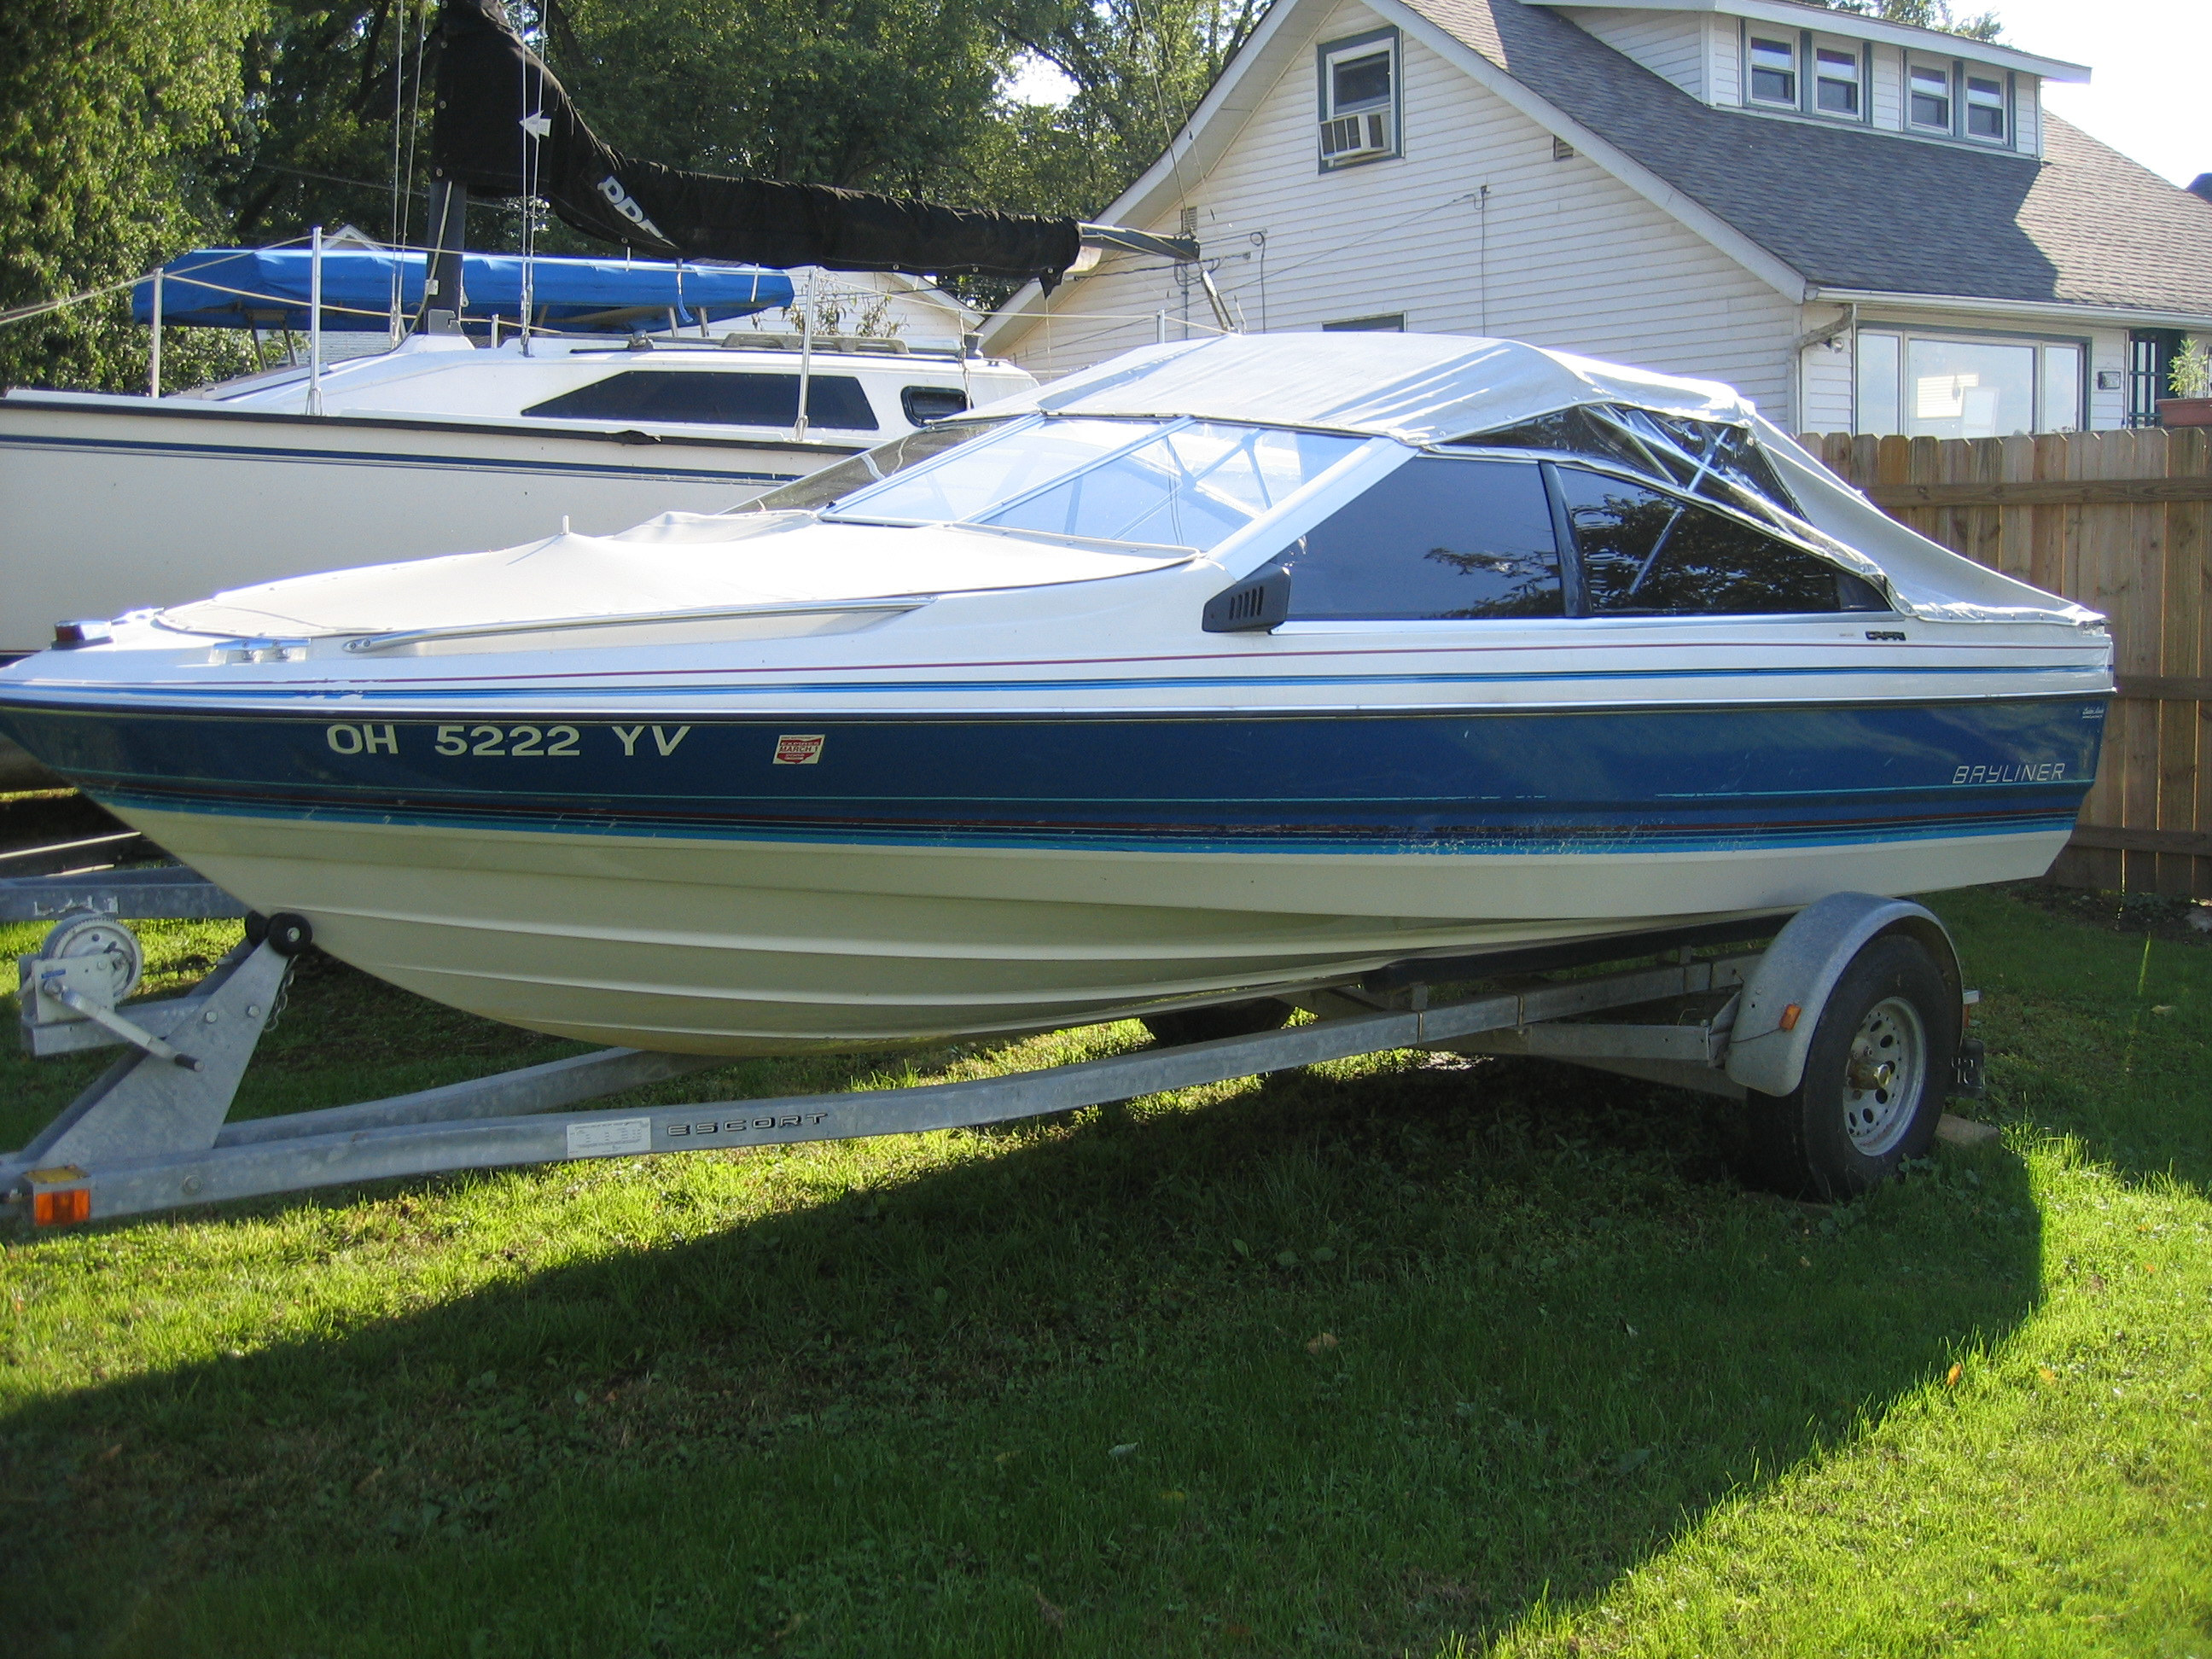 87 bayliner capri wiring diagram bayliner capri schematic